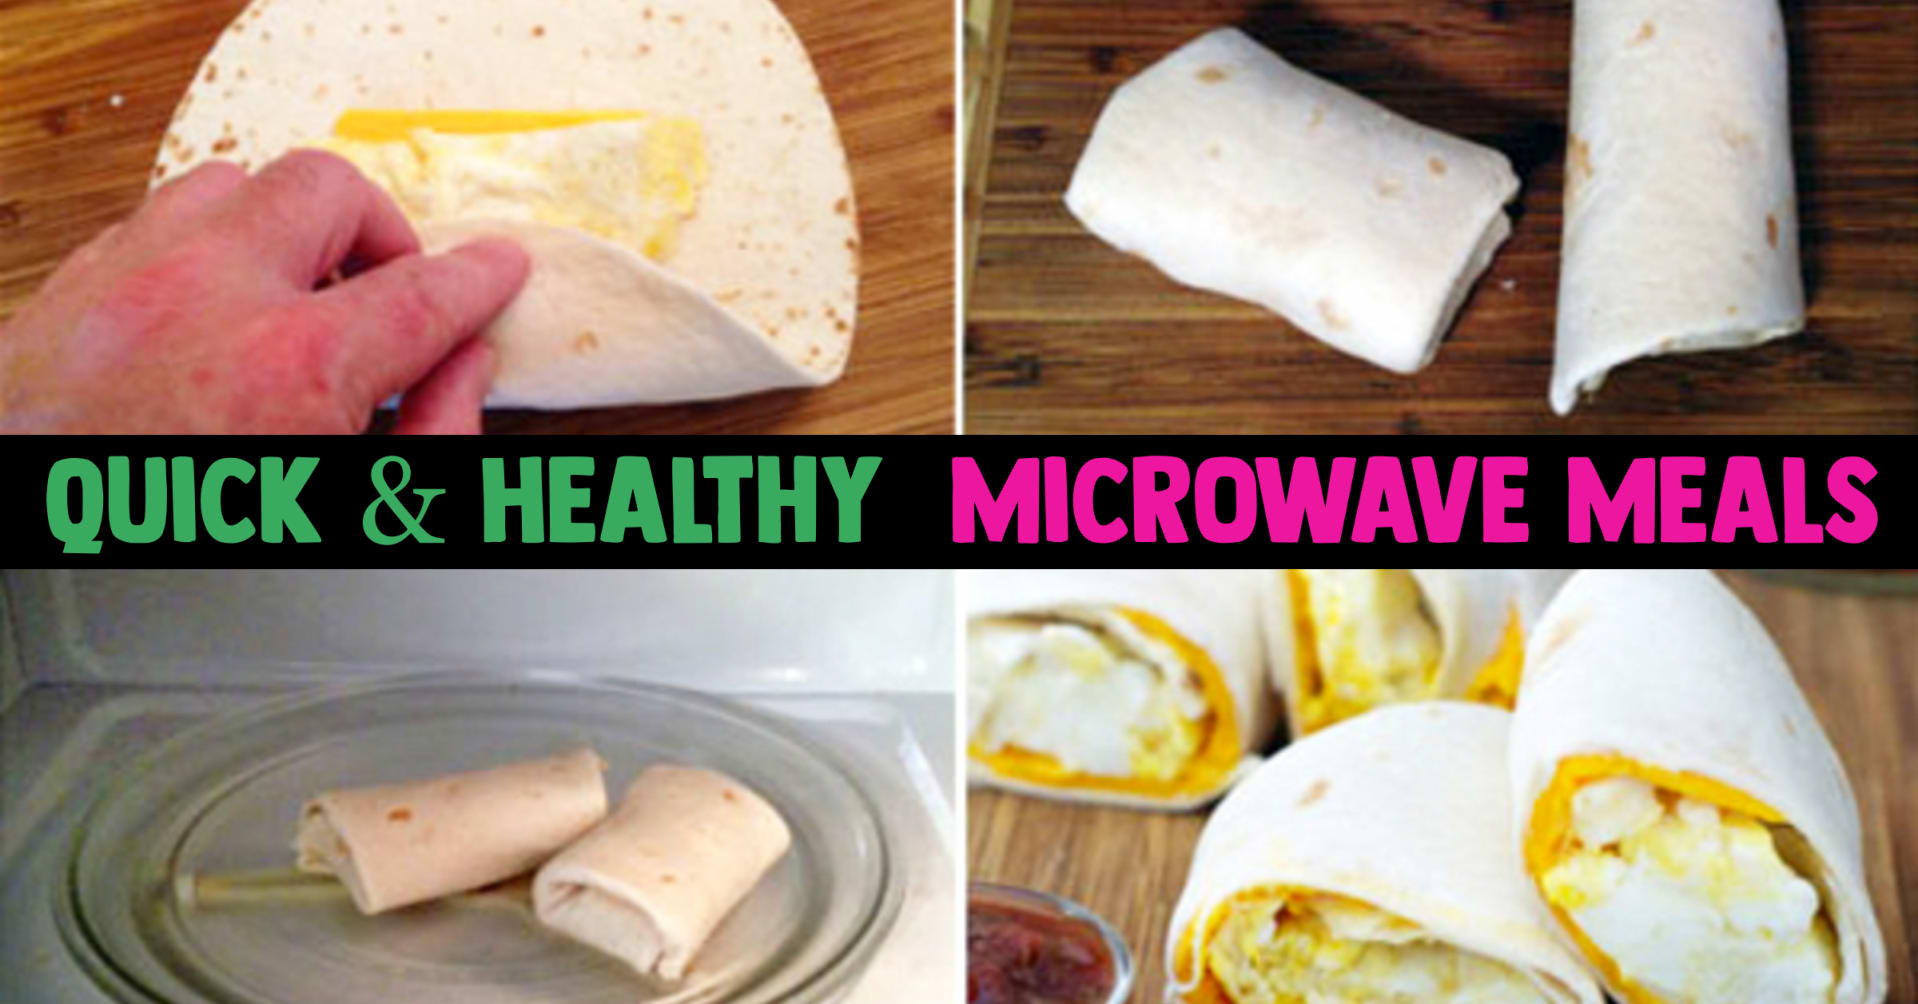 Healthy Microwave Meals - skip frozen microwave meals, make a HEALTHY meal in your microwave even if you're cooking for one. Healthy microwave dinner meals, breakfast mornings meals, 3 ingredients and more quick and easy and HEALTHY microwave meals